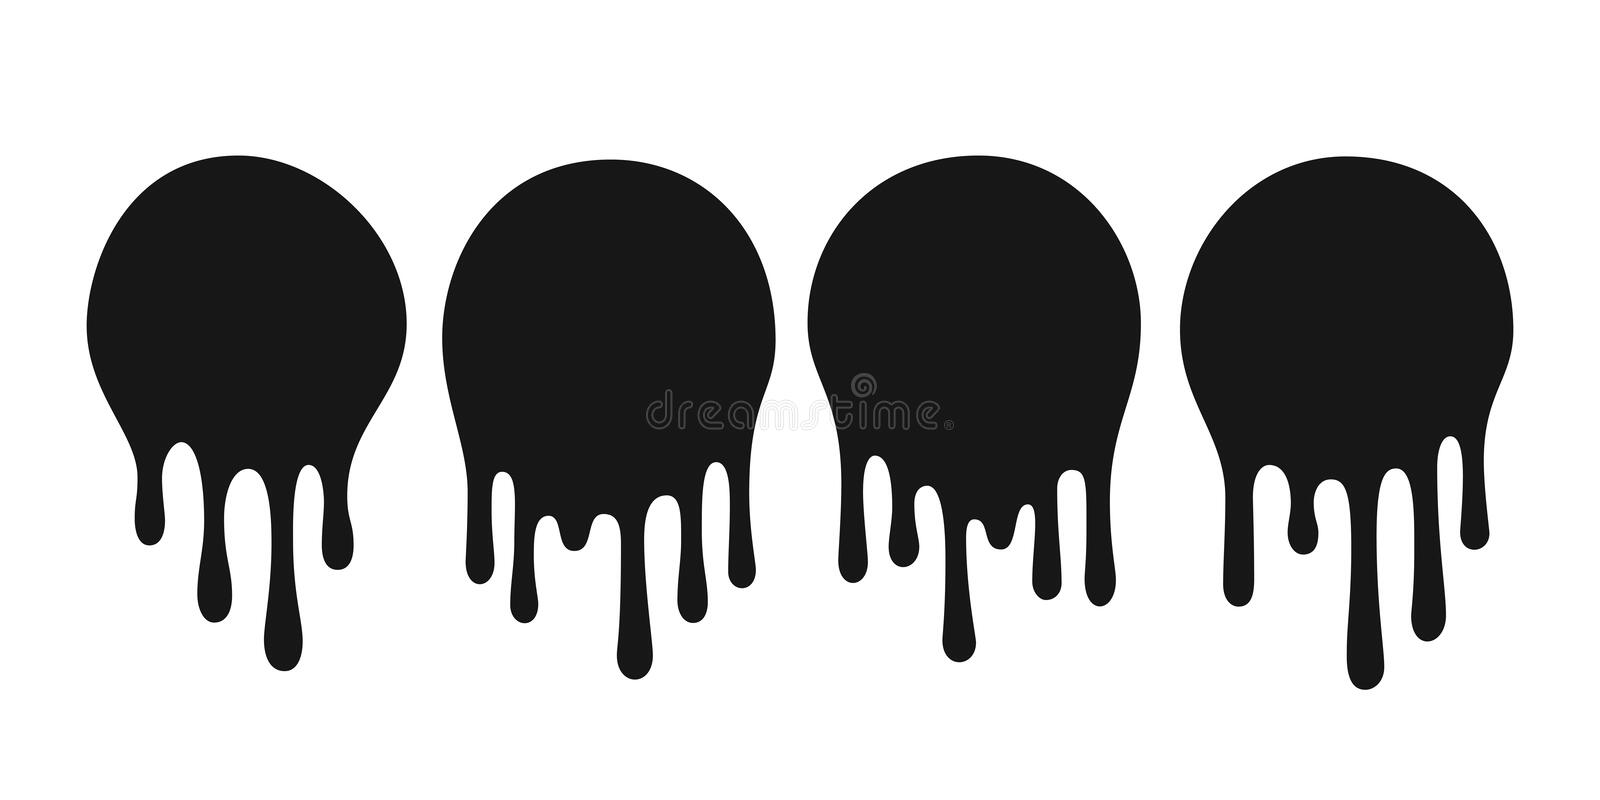 Dripping oil blob. Drip drop paint or sauce stain drips. Black drippings sauces round spots vector set royalty free illustration